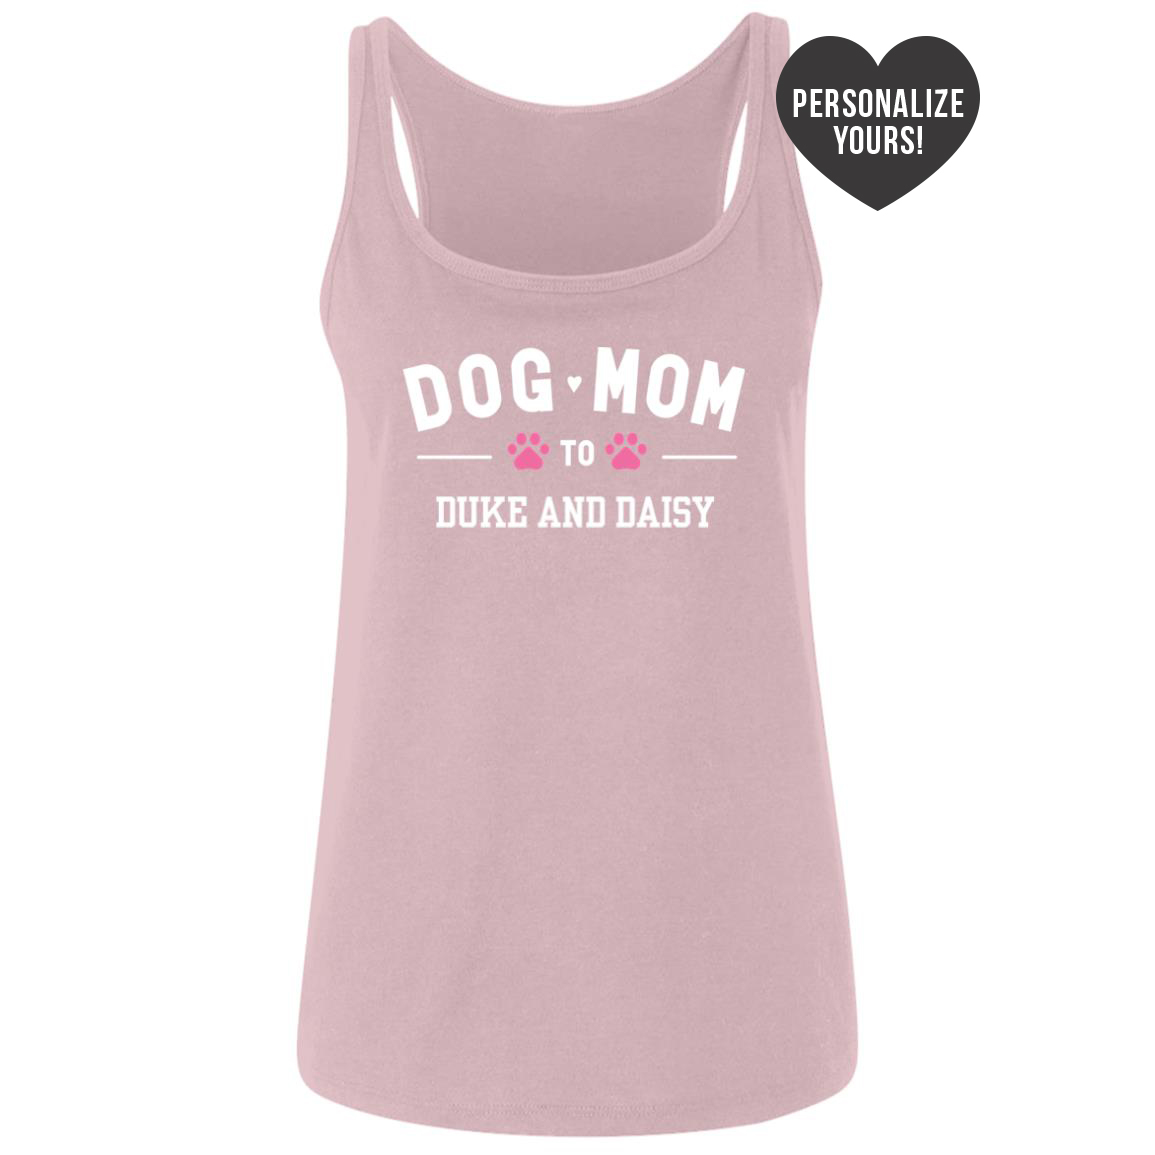 Dog Mom To My Fur Babies 💕 Personalized Relaxed Fit Tank- Pink